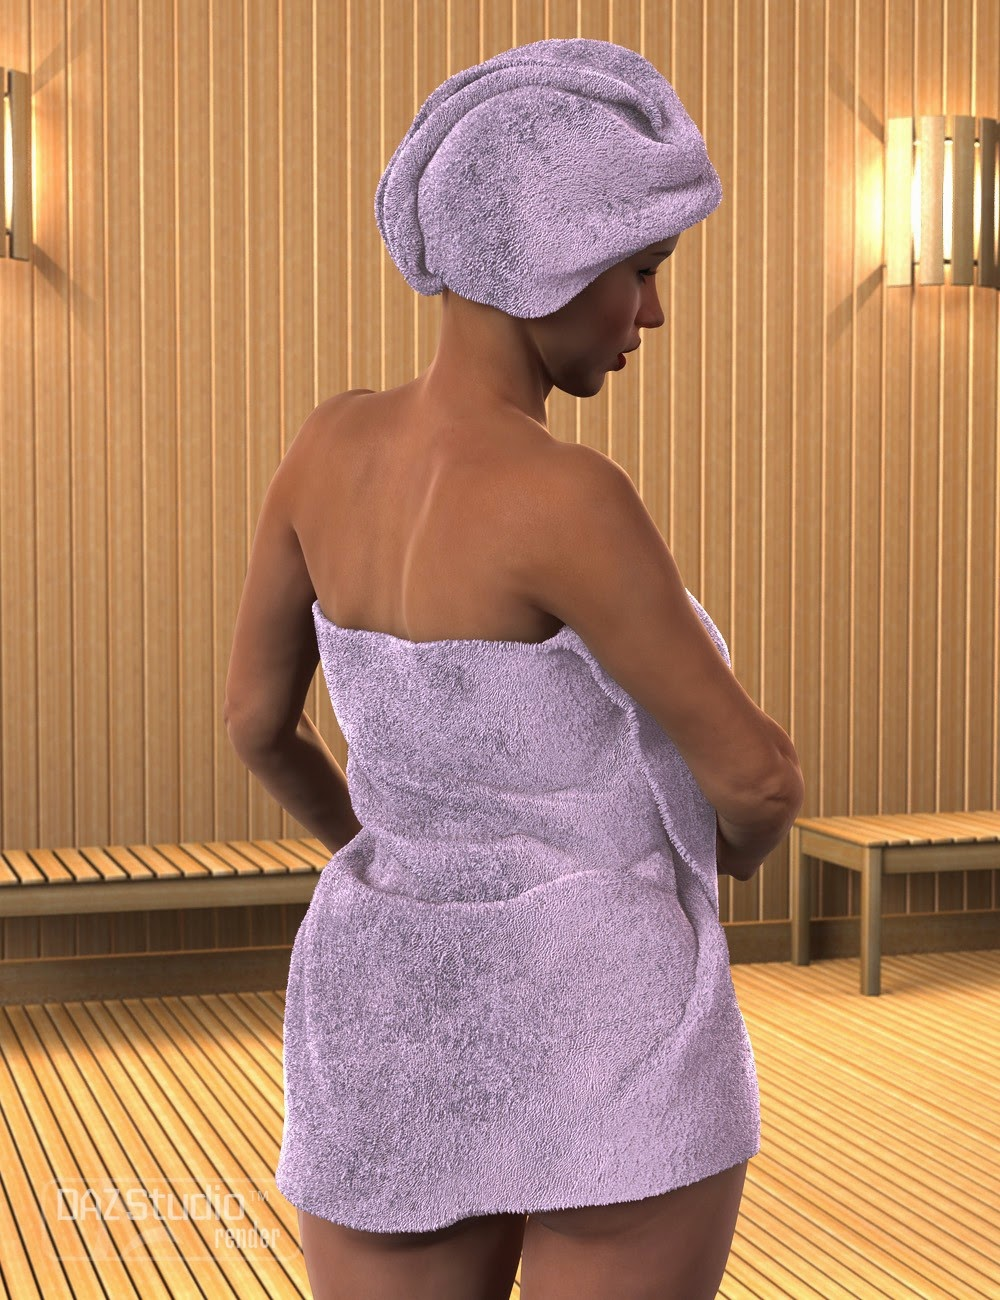 download daz studio 3 for free daz 3d bath wear for